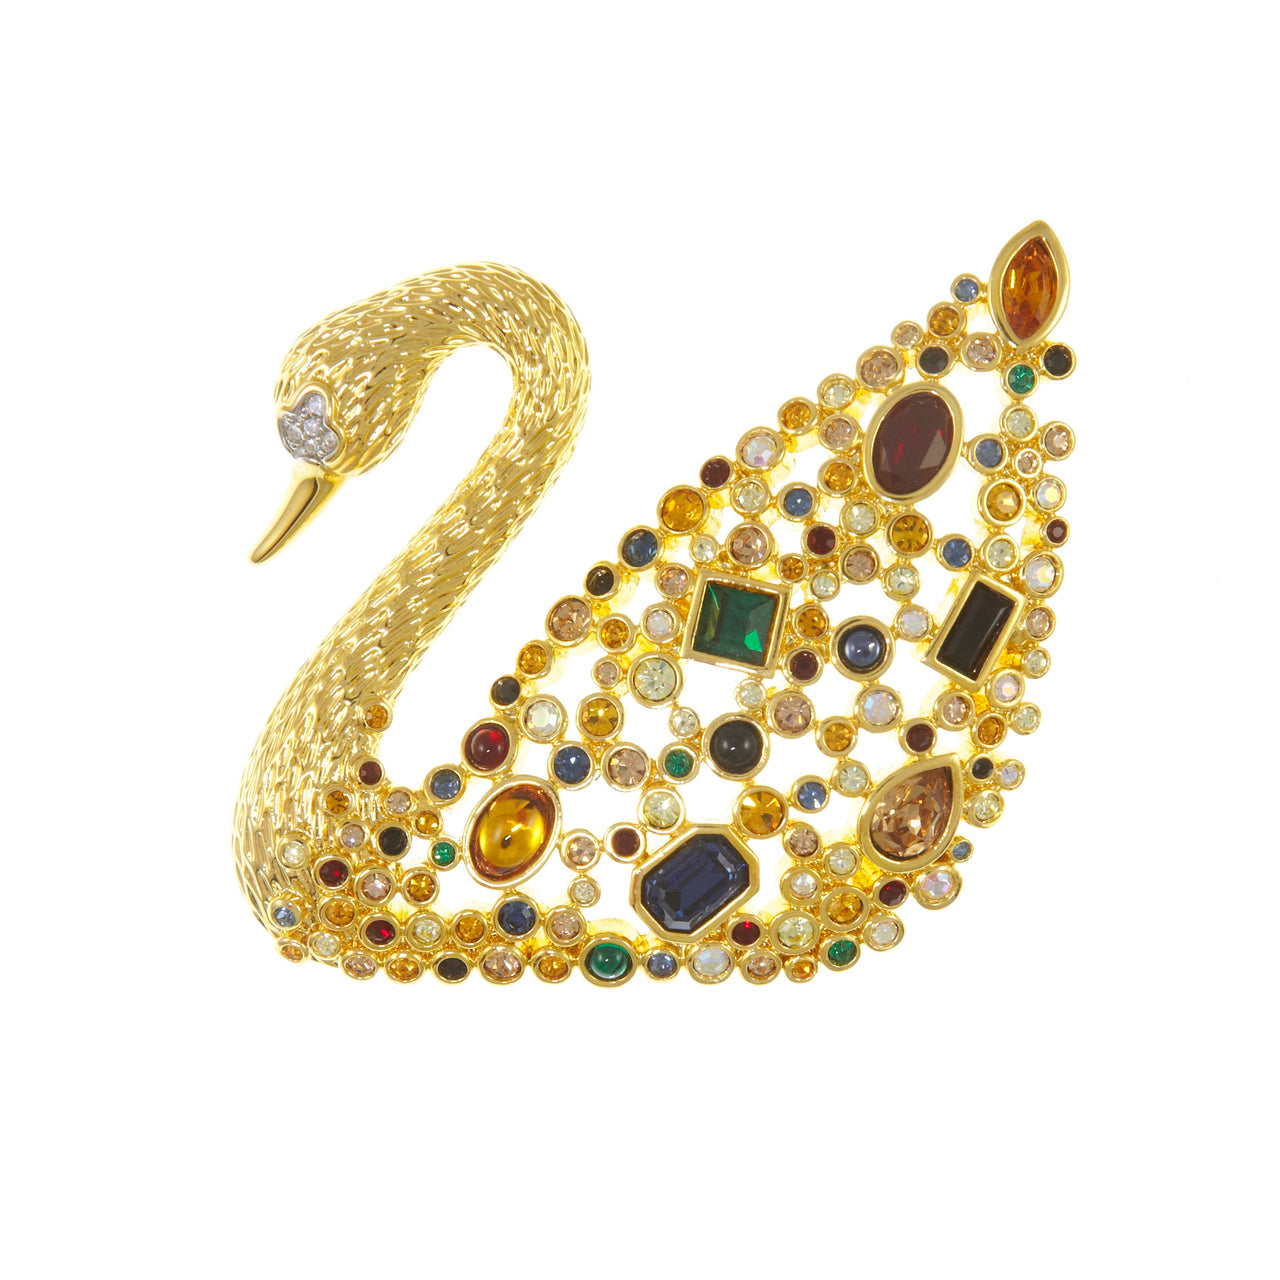 Swarovski Swan gold plated brooch